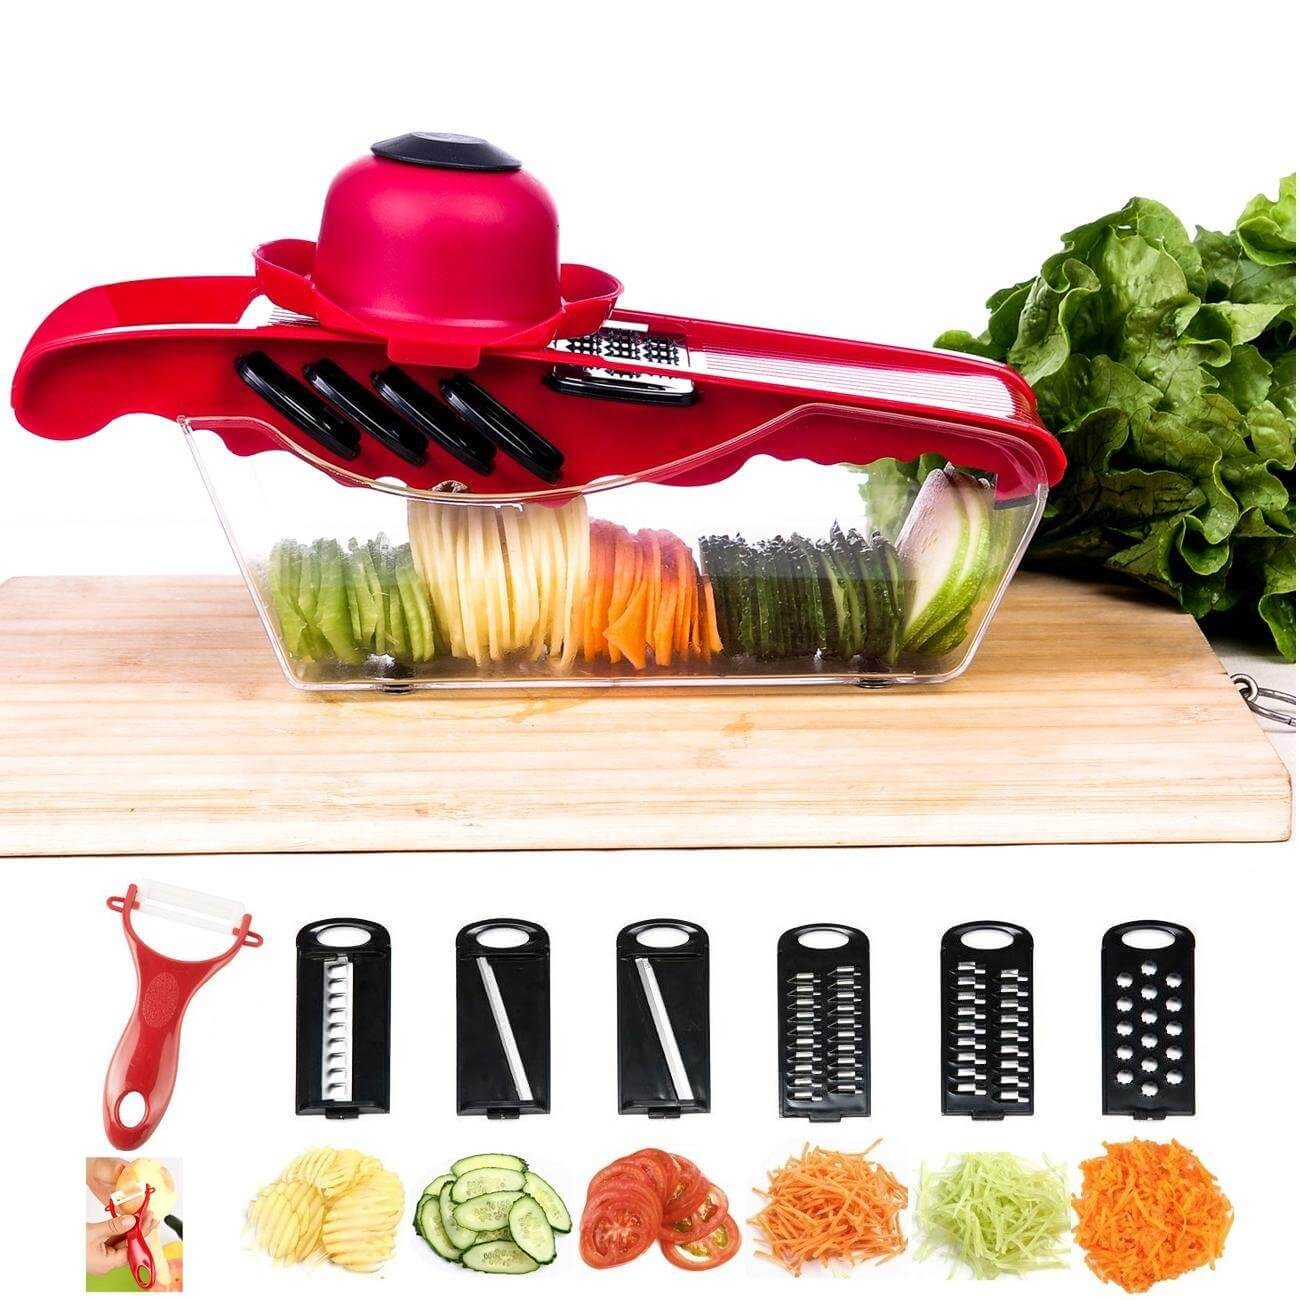 Mandoline Vegetable Slicer Cutter Chopper